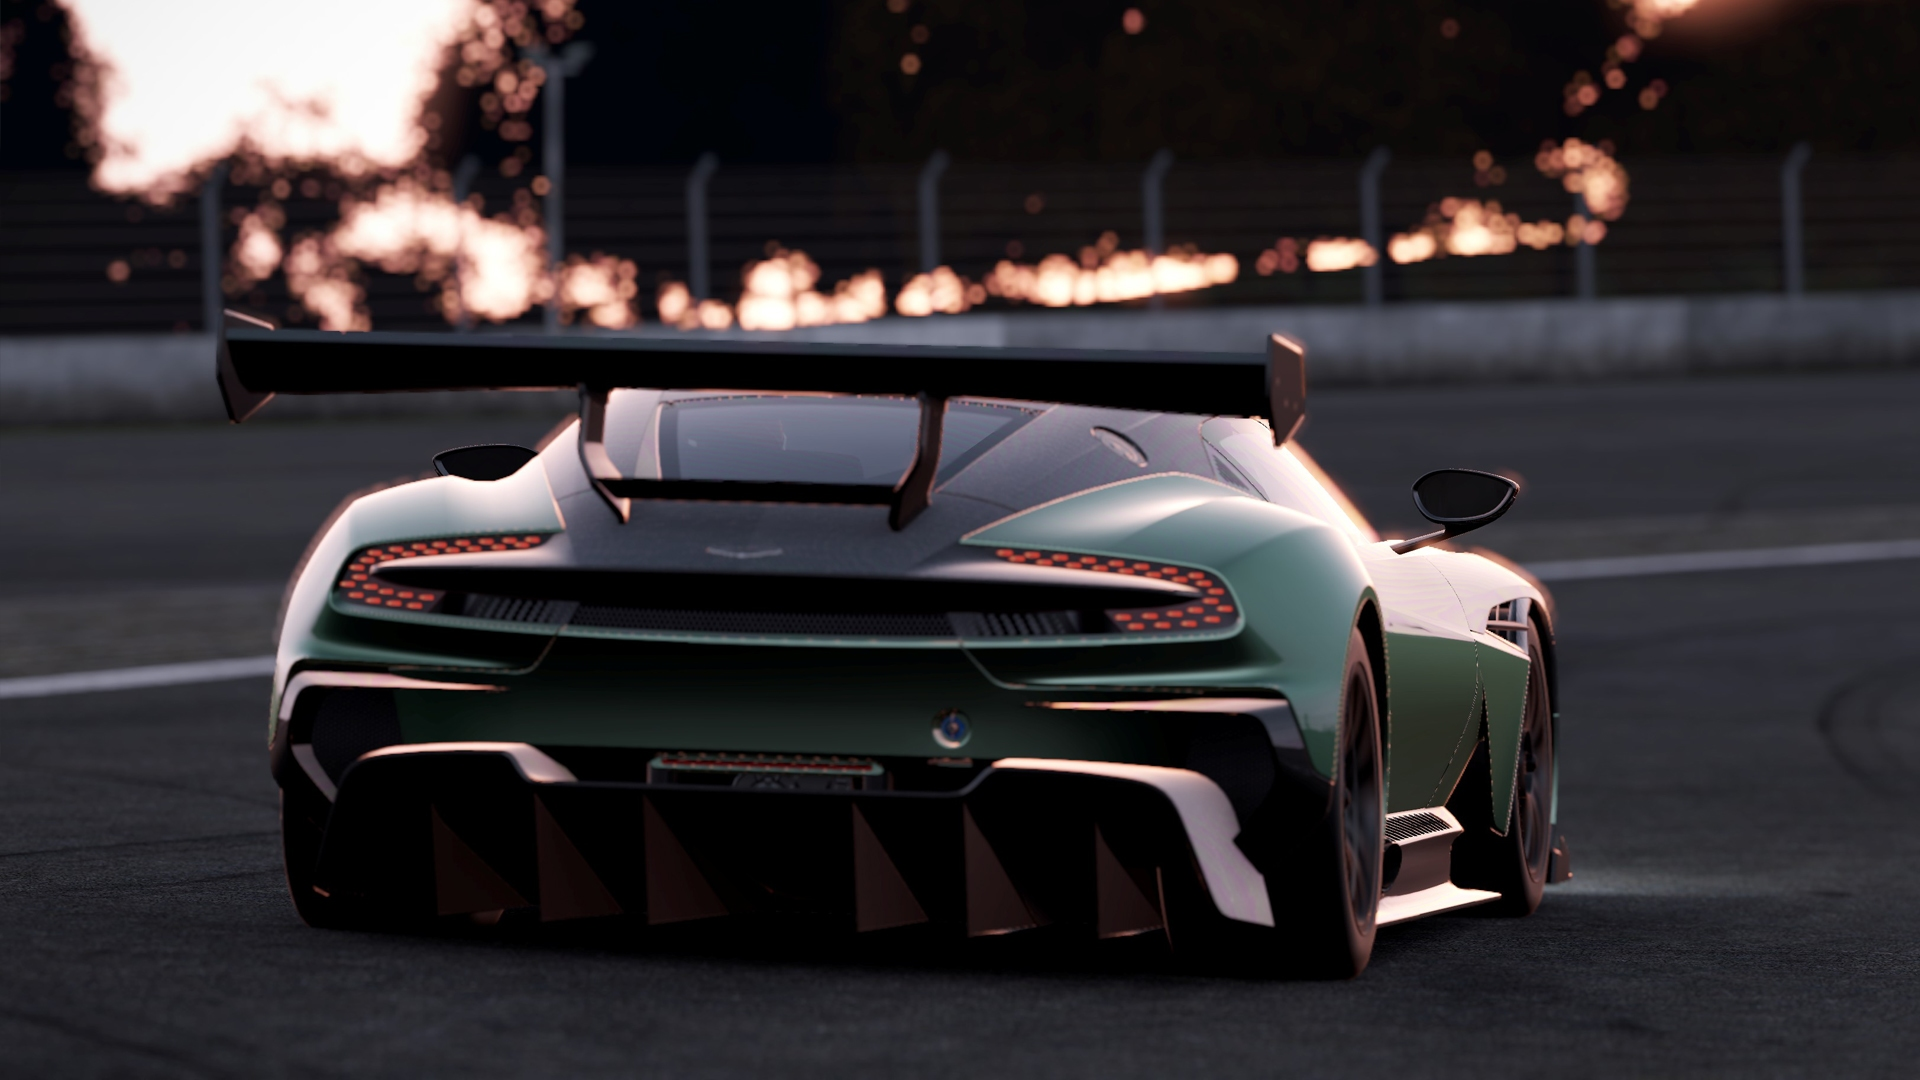 Aston Martin Vulcan Sports Car Project Cars 2 Video Forza 7 Vs Project Cars 2 1113570 Hd Wallpaper Backgrounds Download